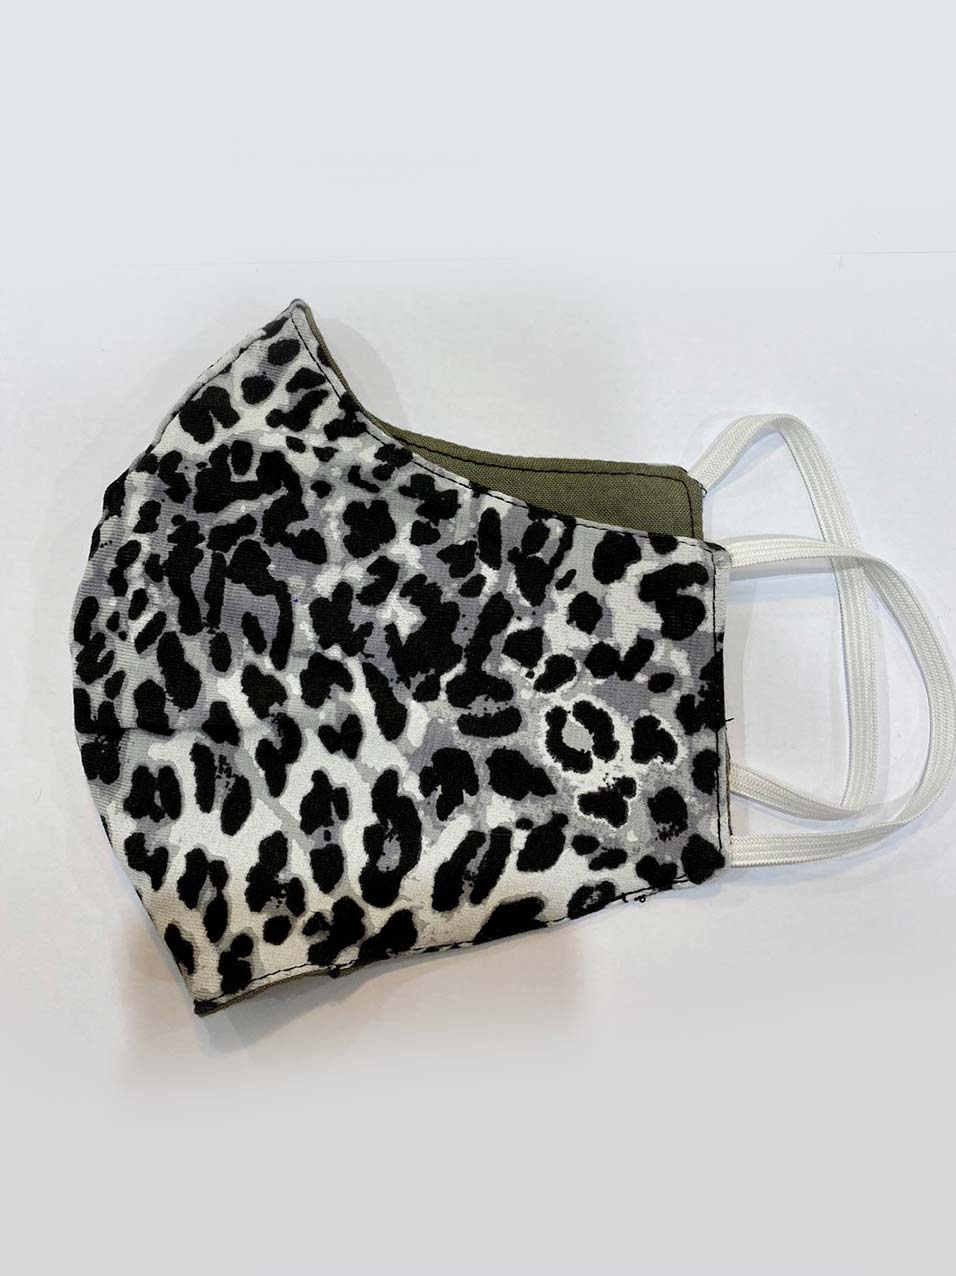 Leopard patter face mask for COVID-19